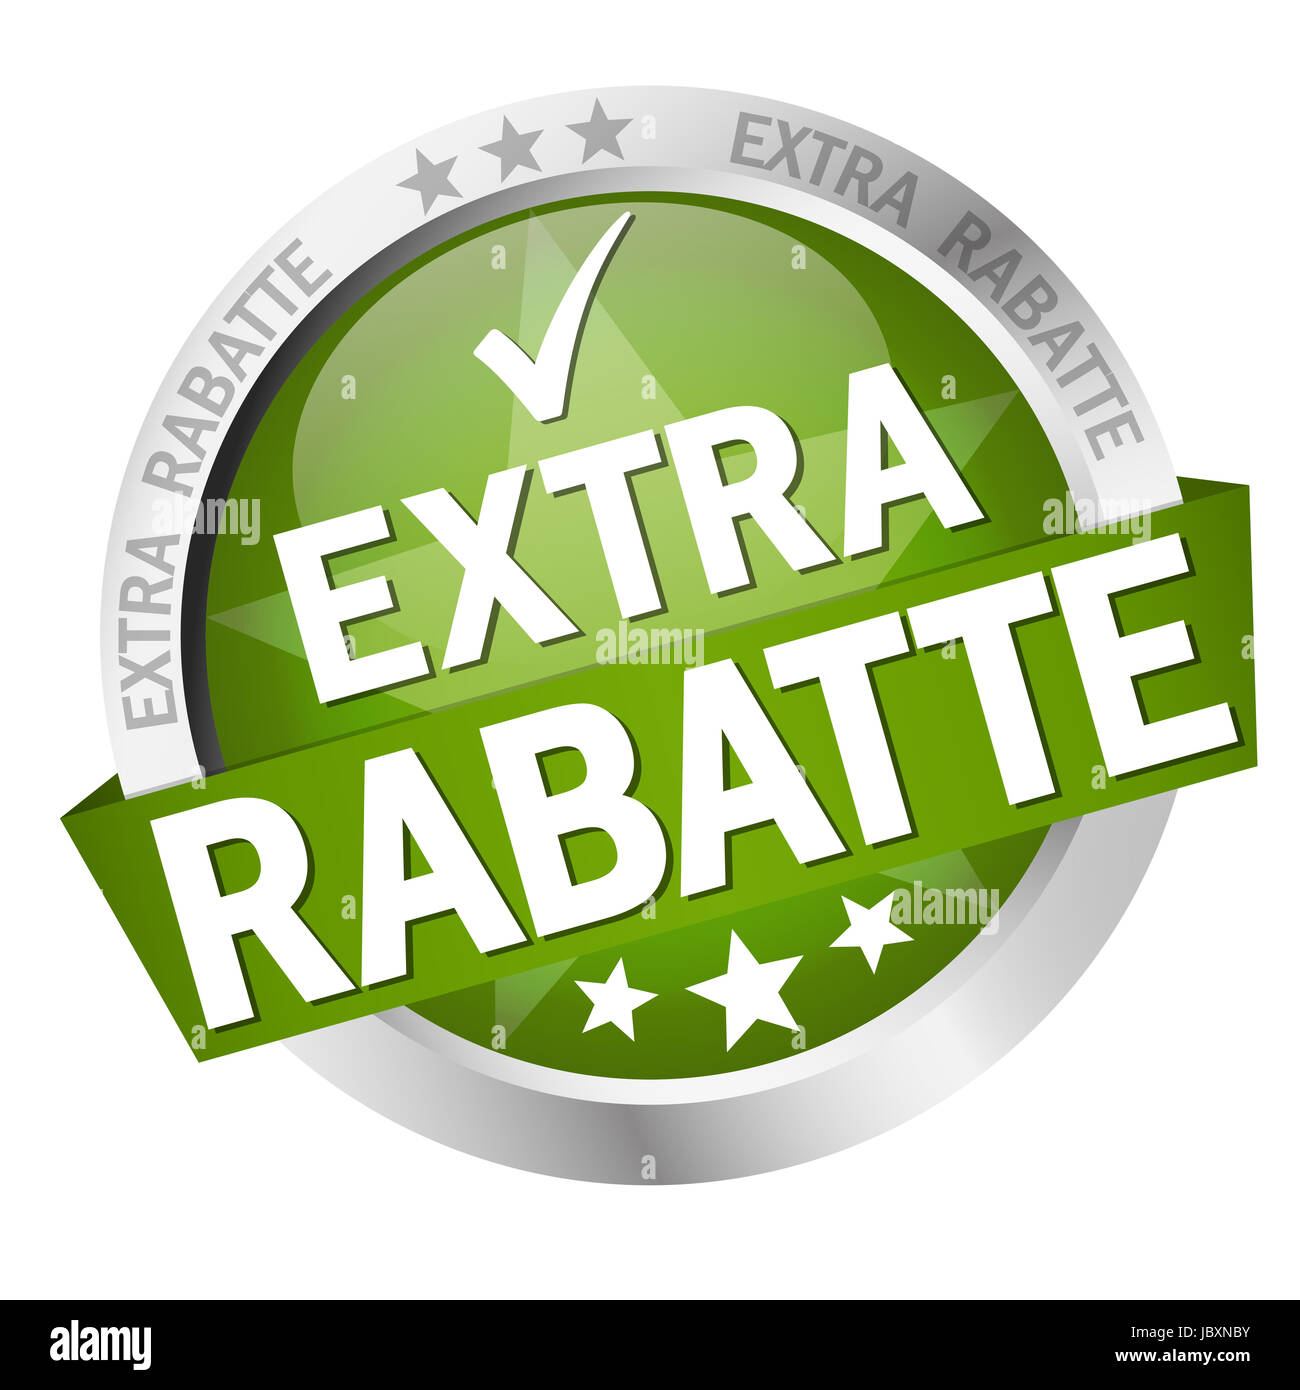 Button - Extra Rabatte Vector Stock Photo